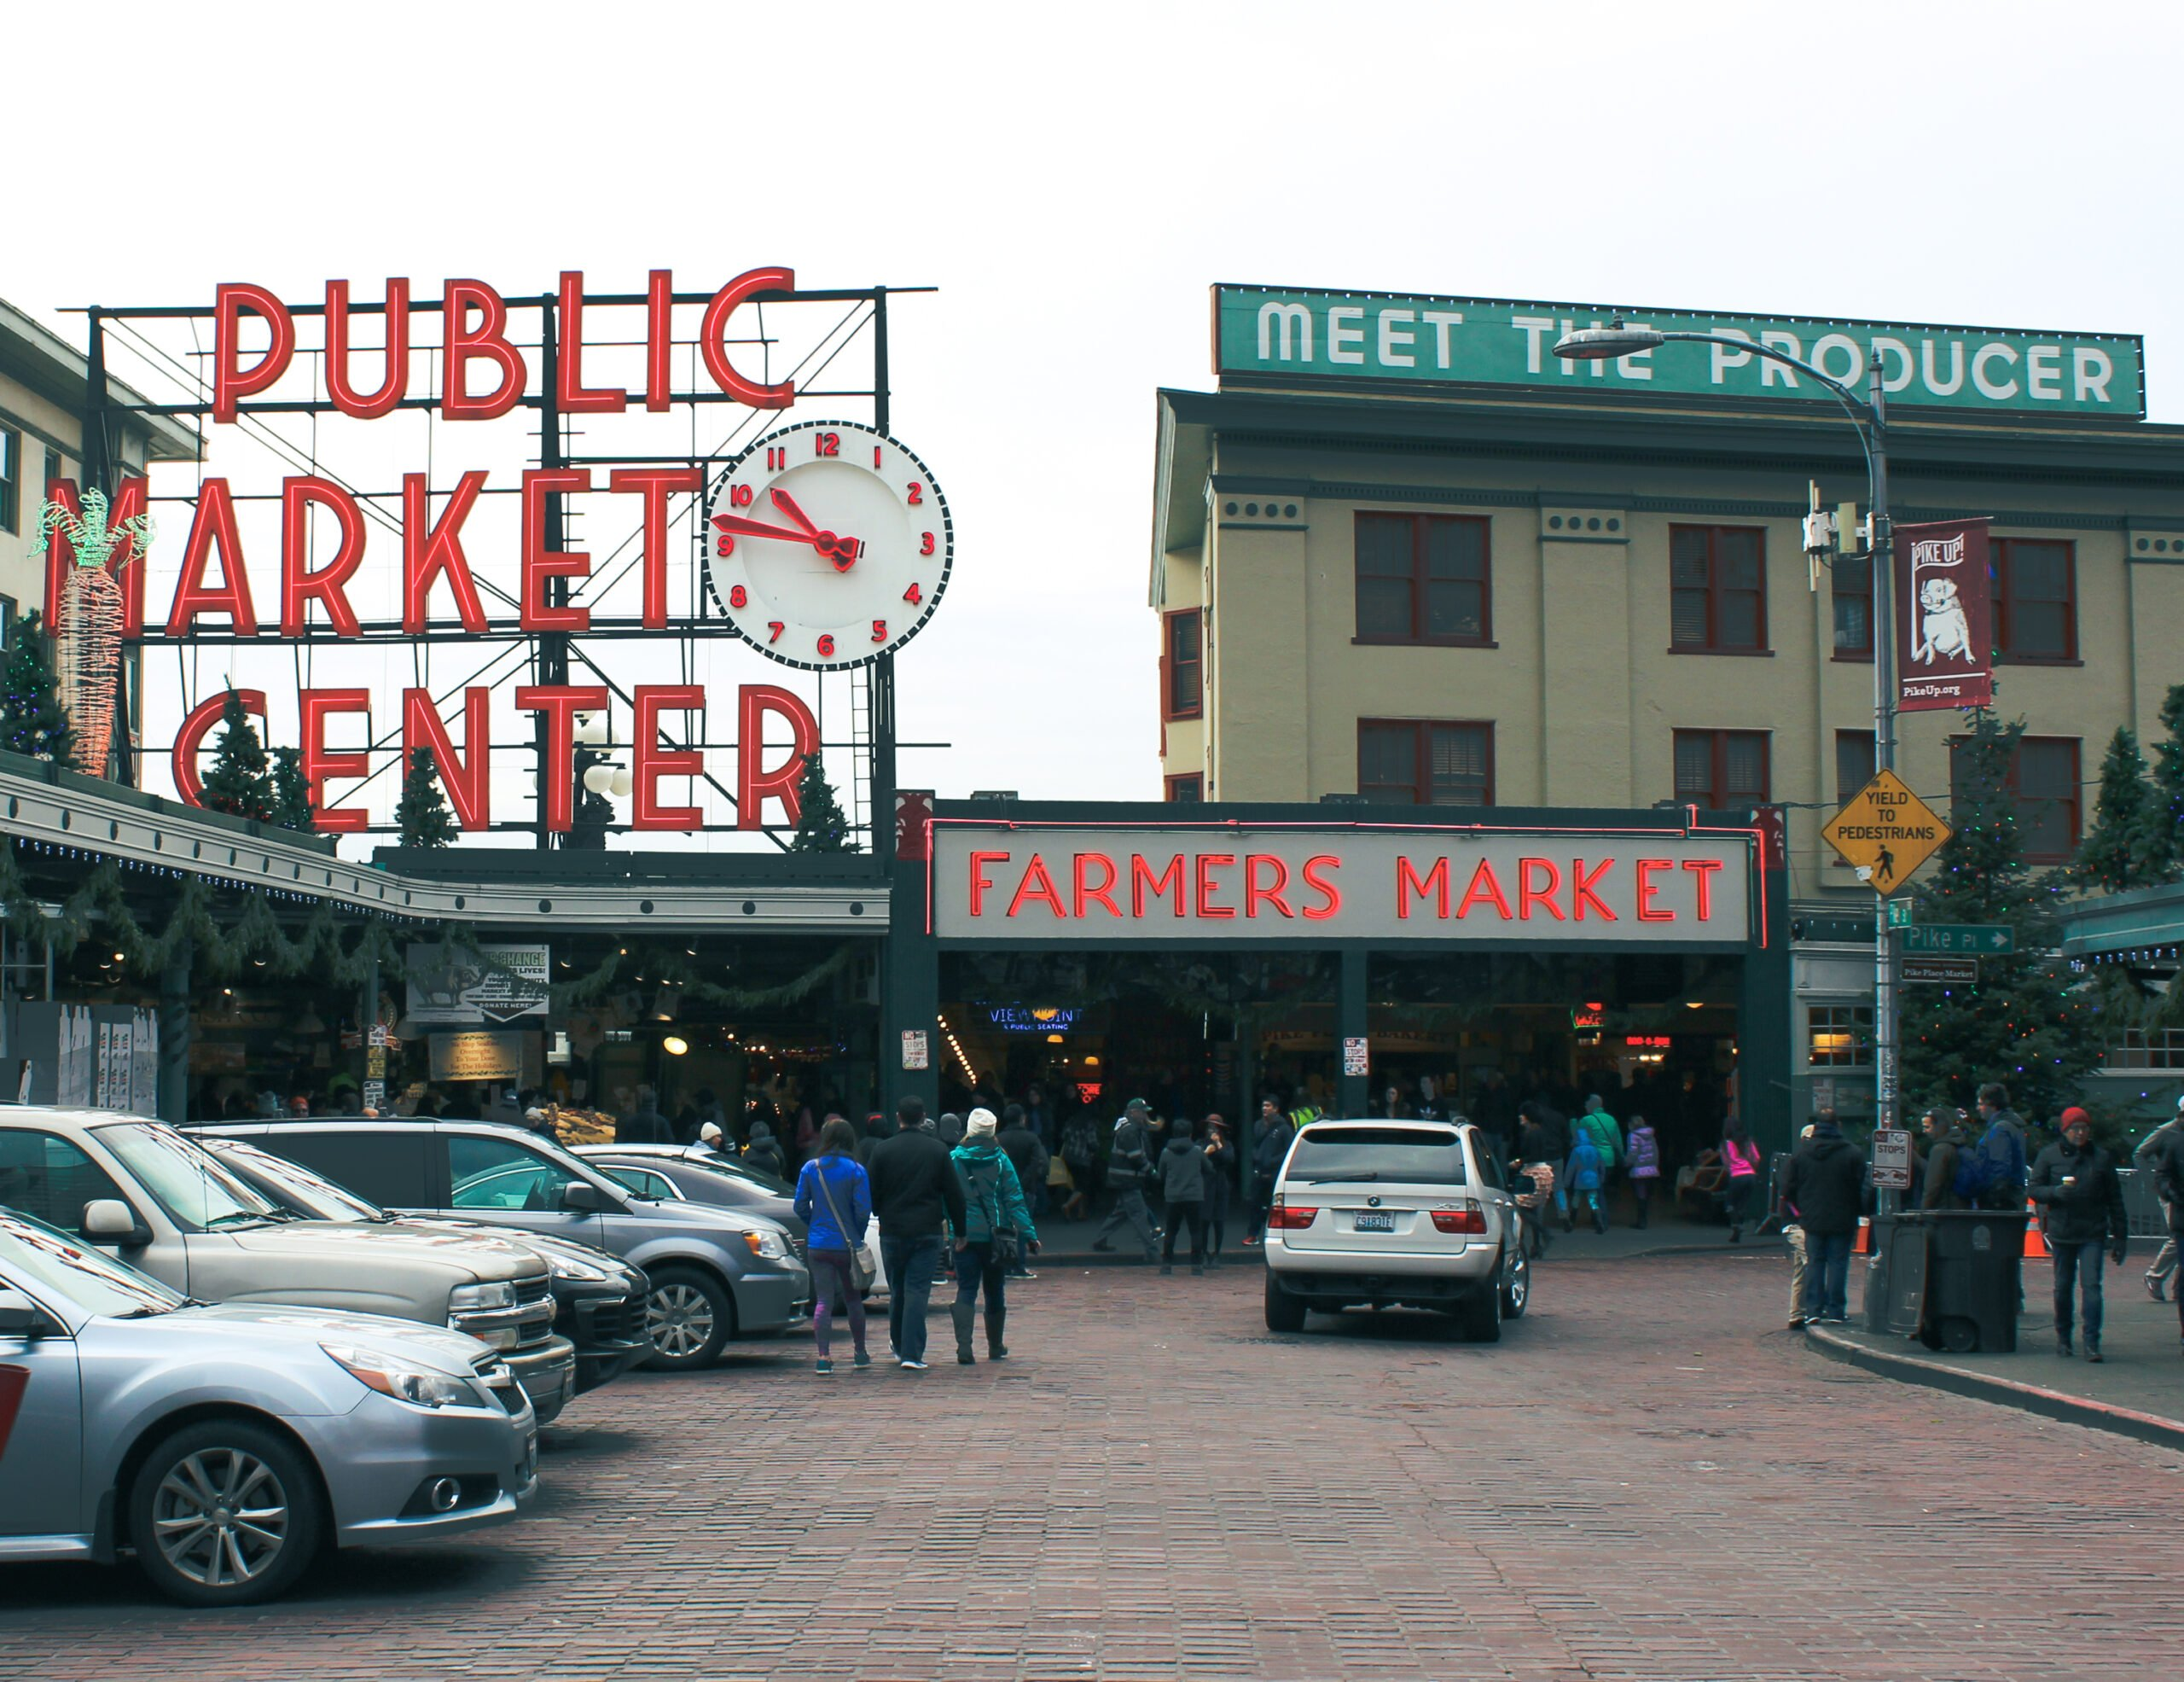 Pike place market entry decorated for christmas.